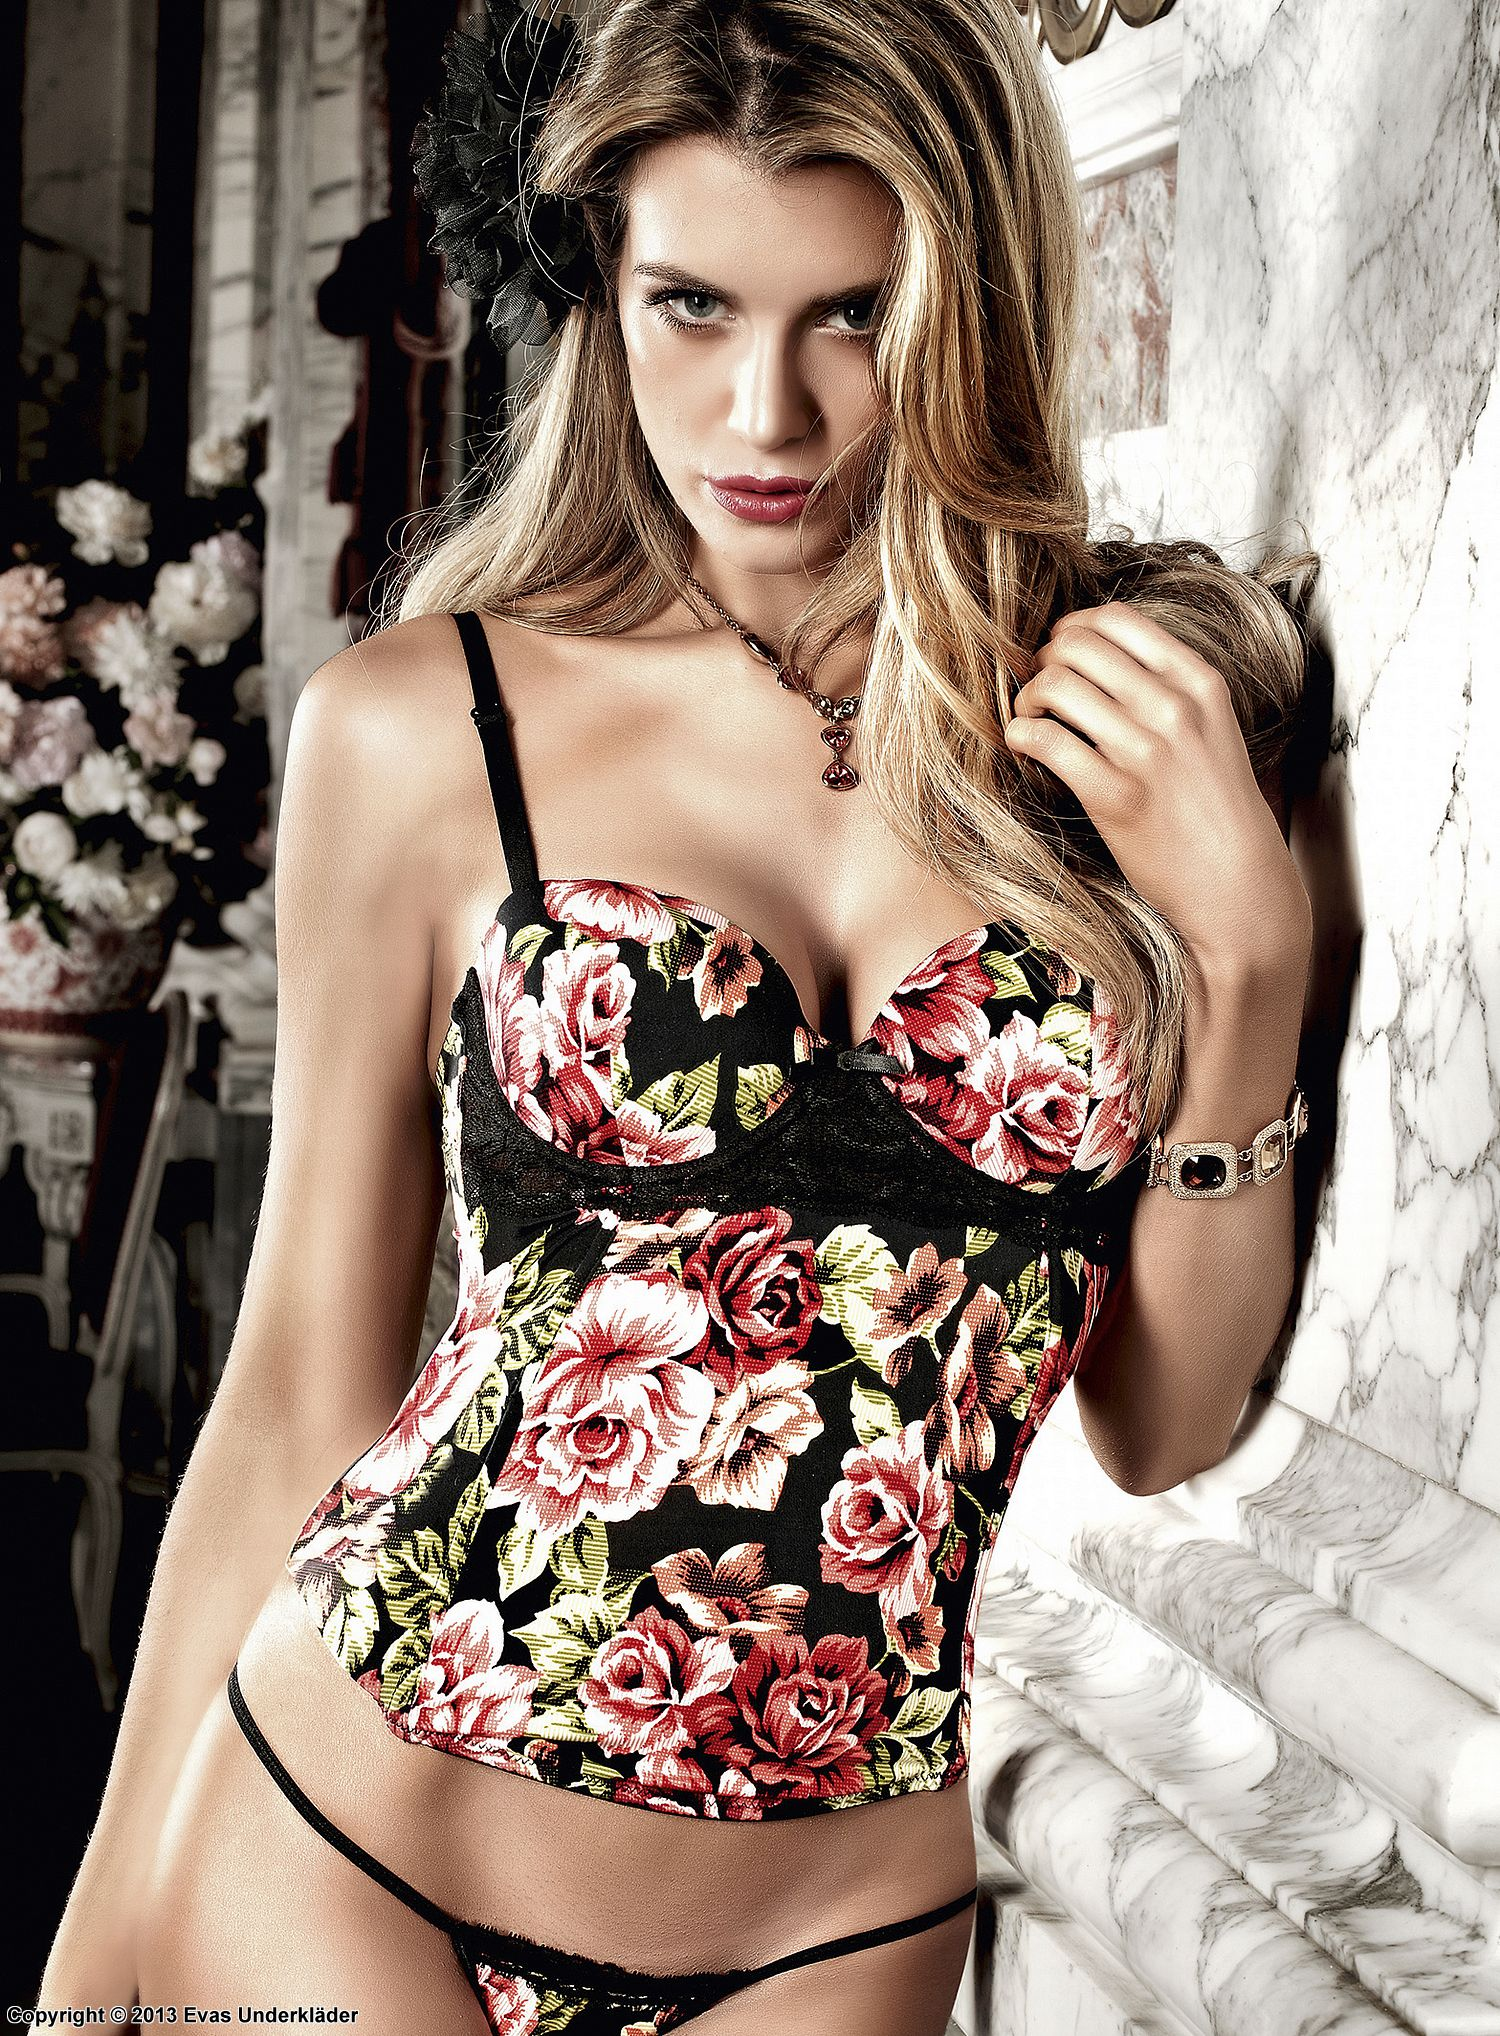 Blommig bustier